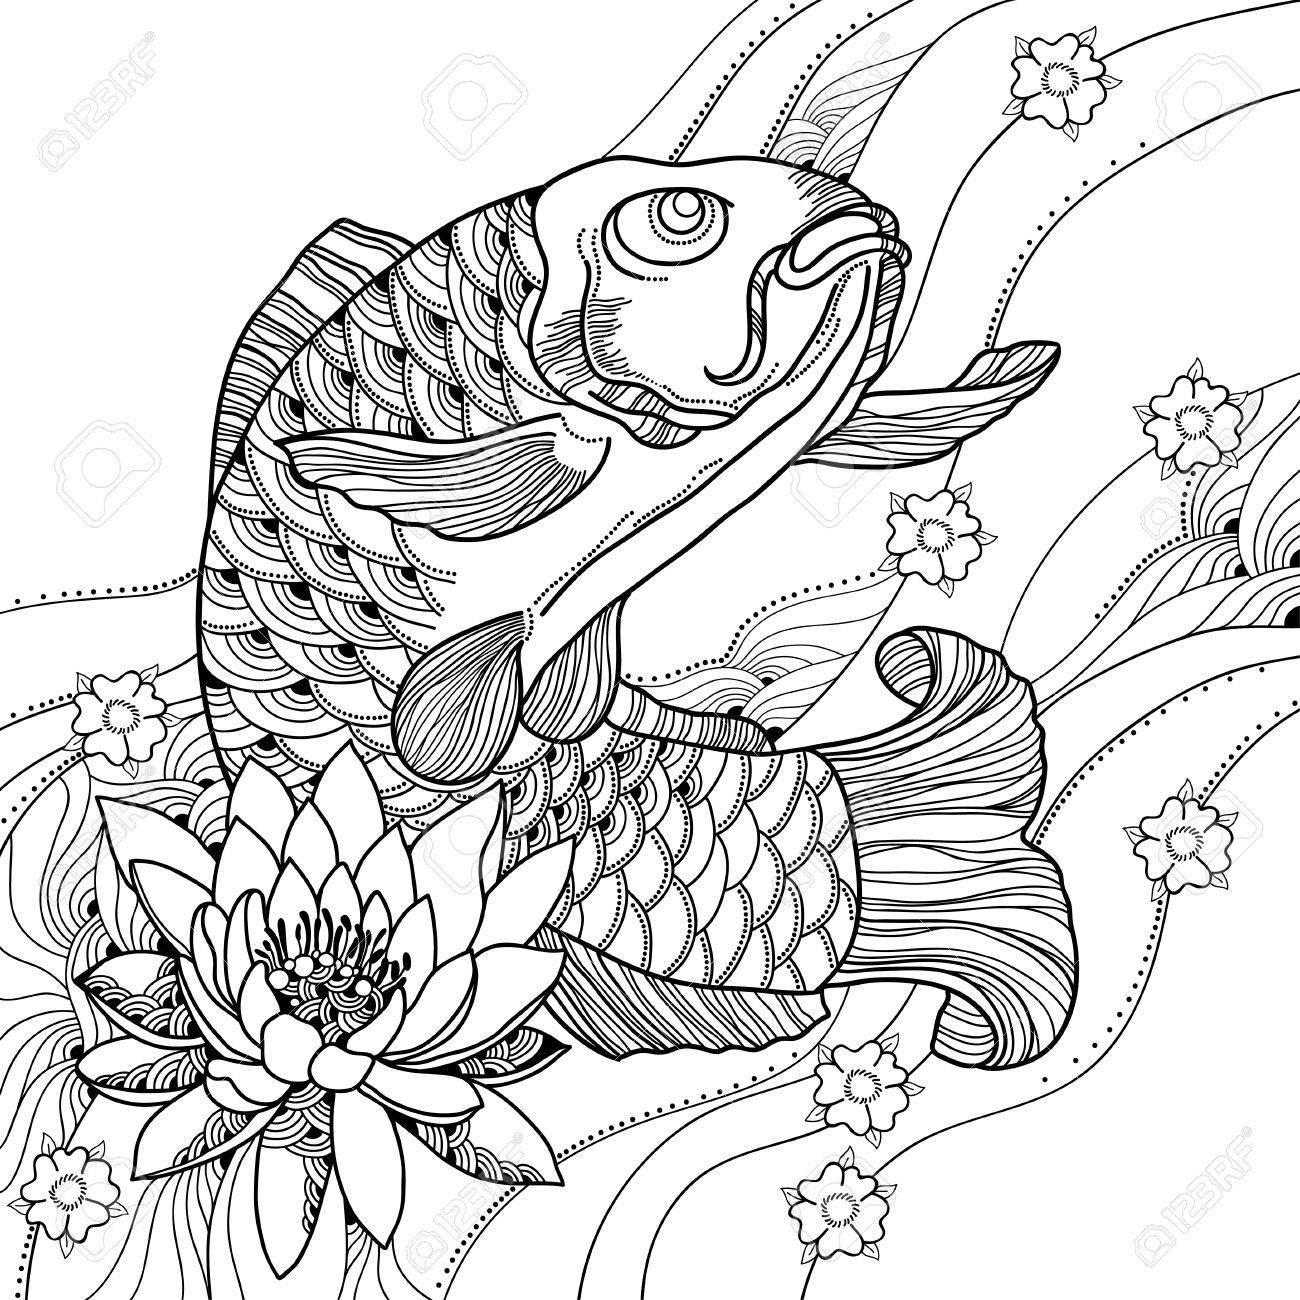 1300x1300 Illustration With Drawn Outline Koi Carp, Waves And Lotus Or Water